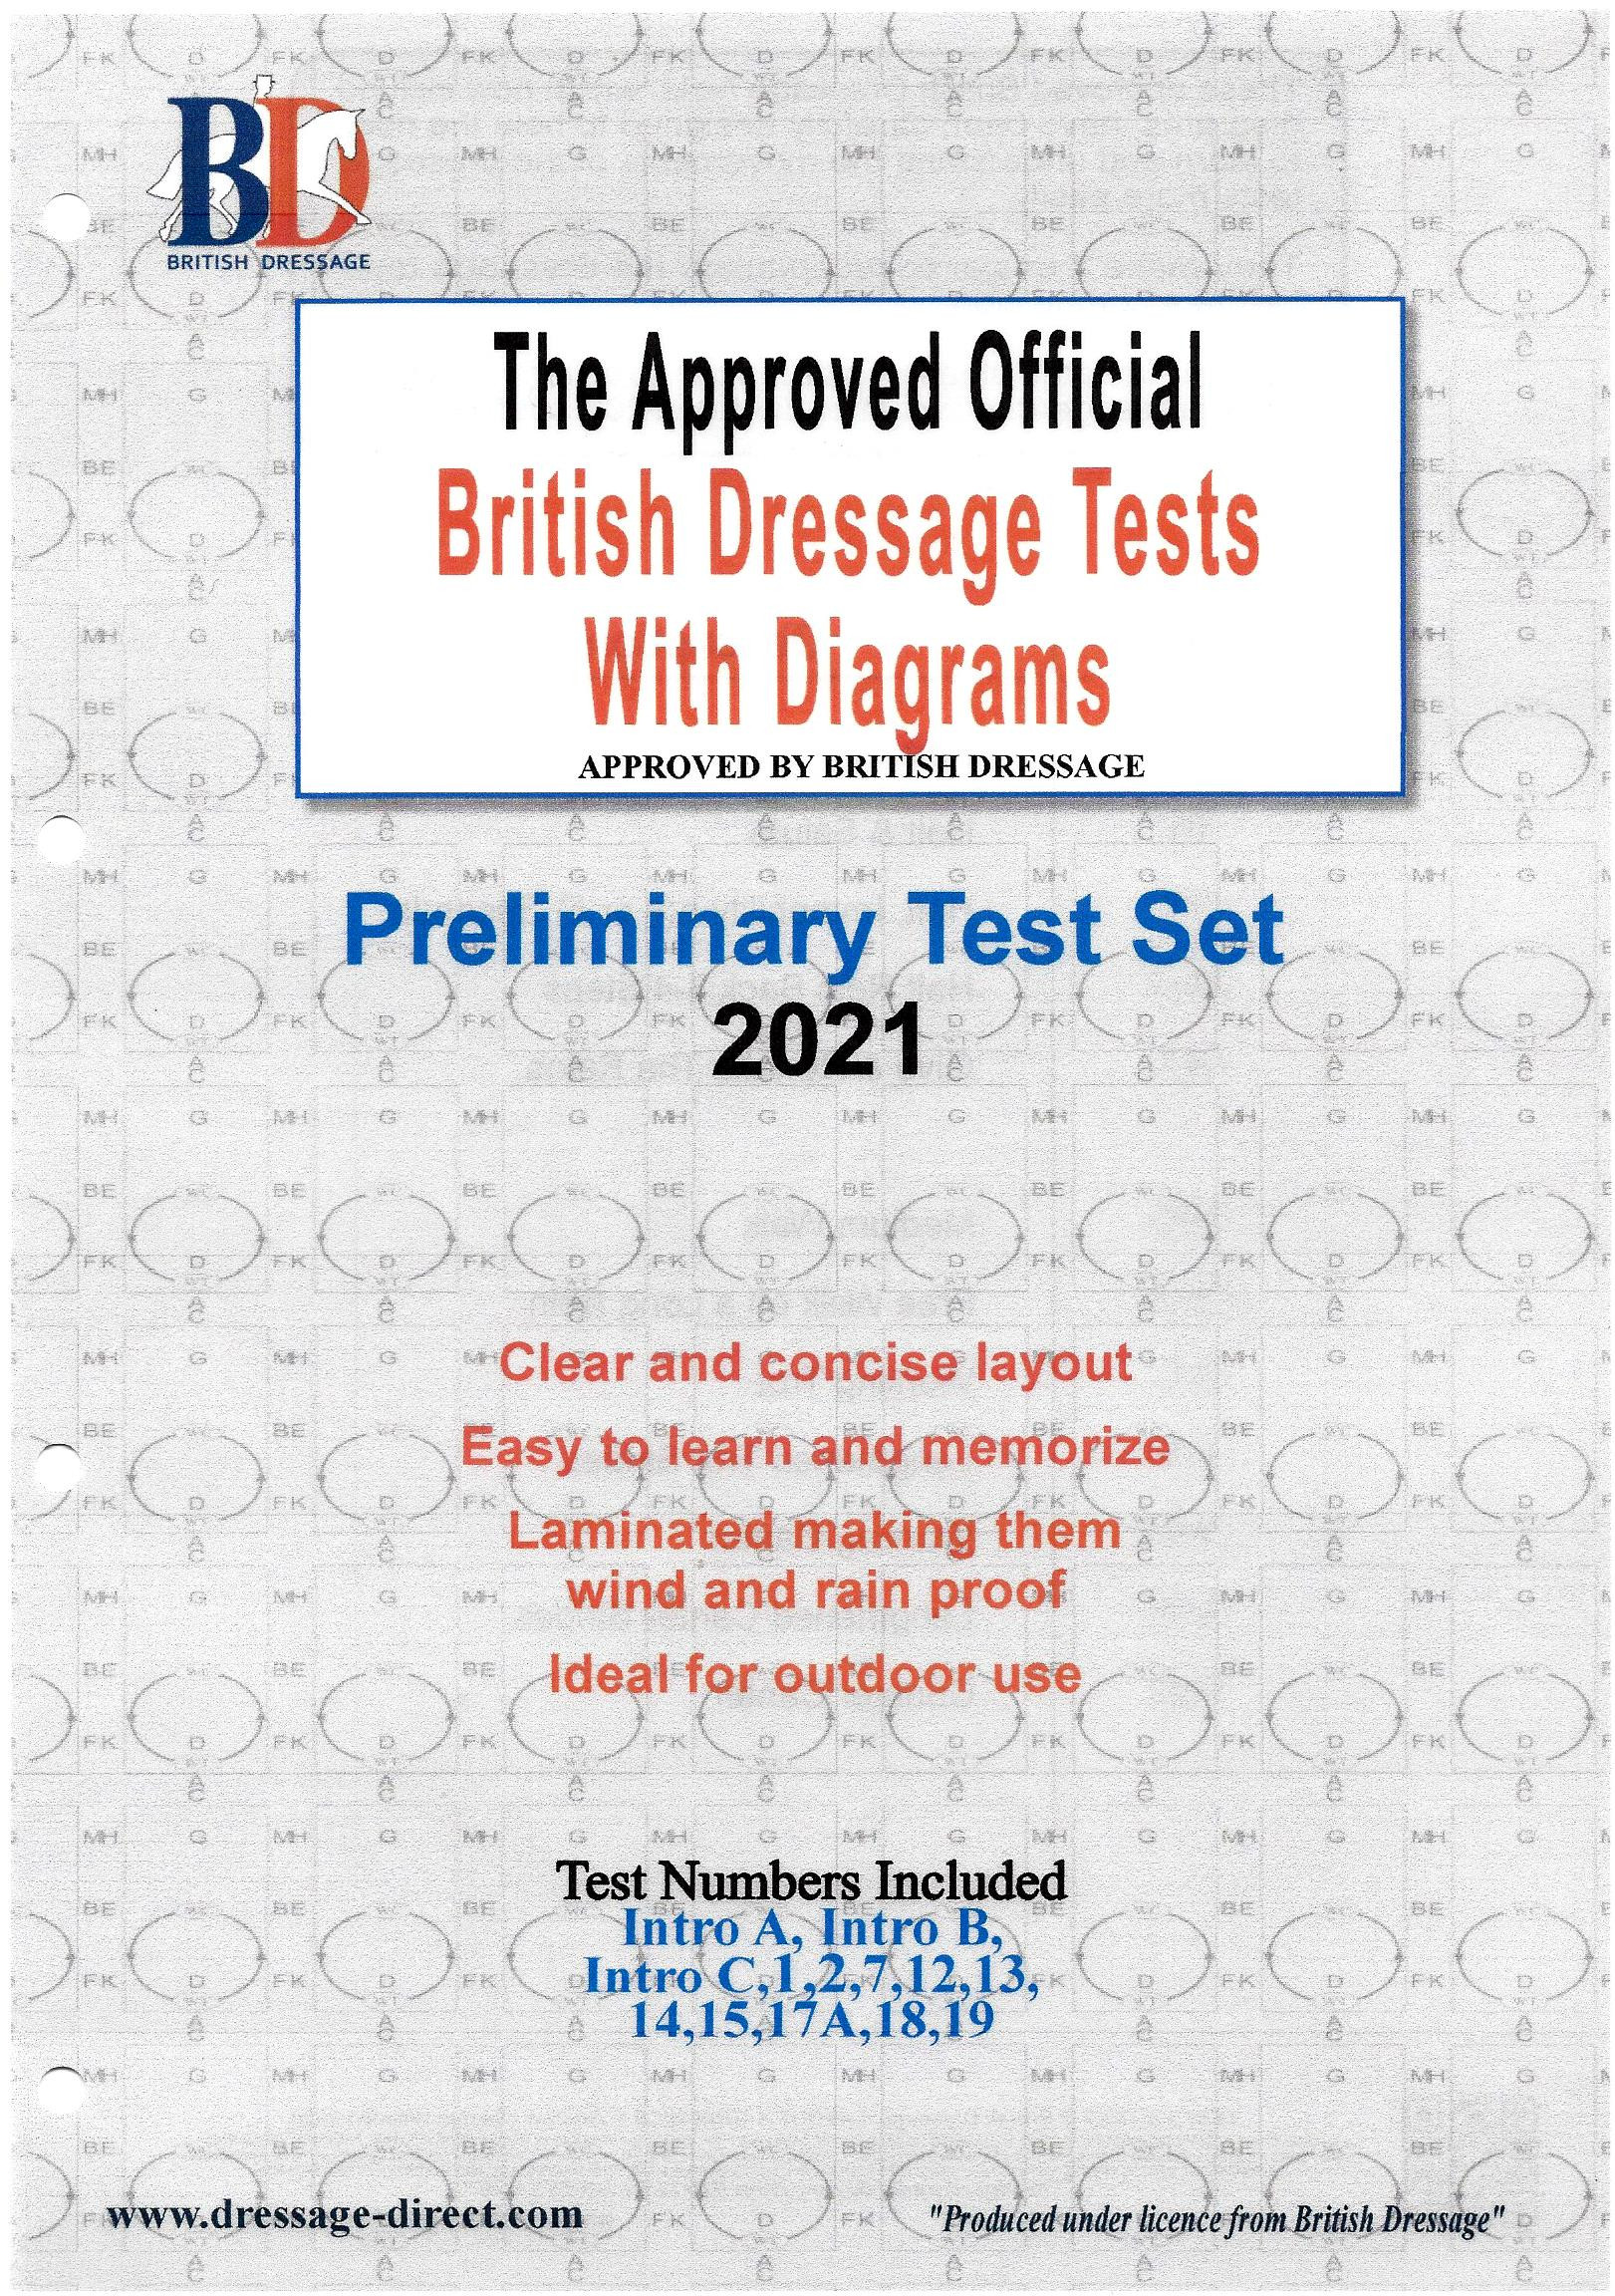 British Dressage 2021 Intro and Preliminary Test Set with Diagrams